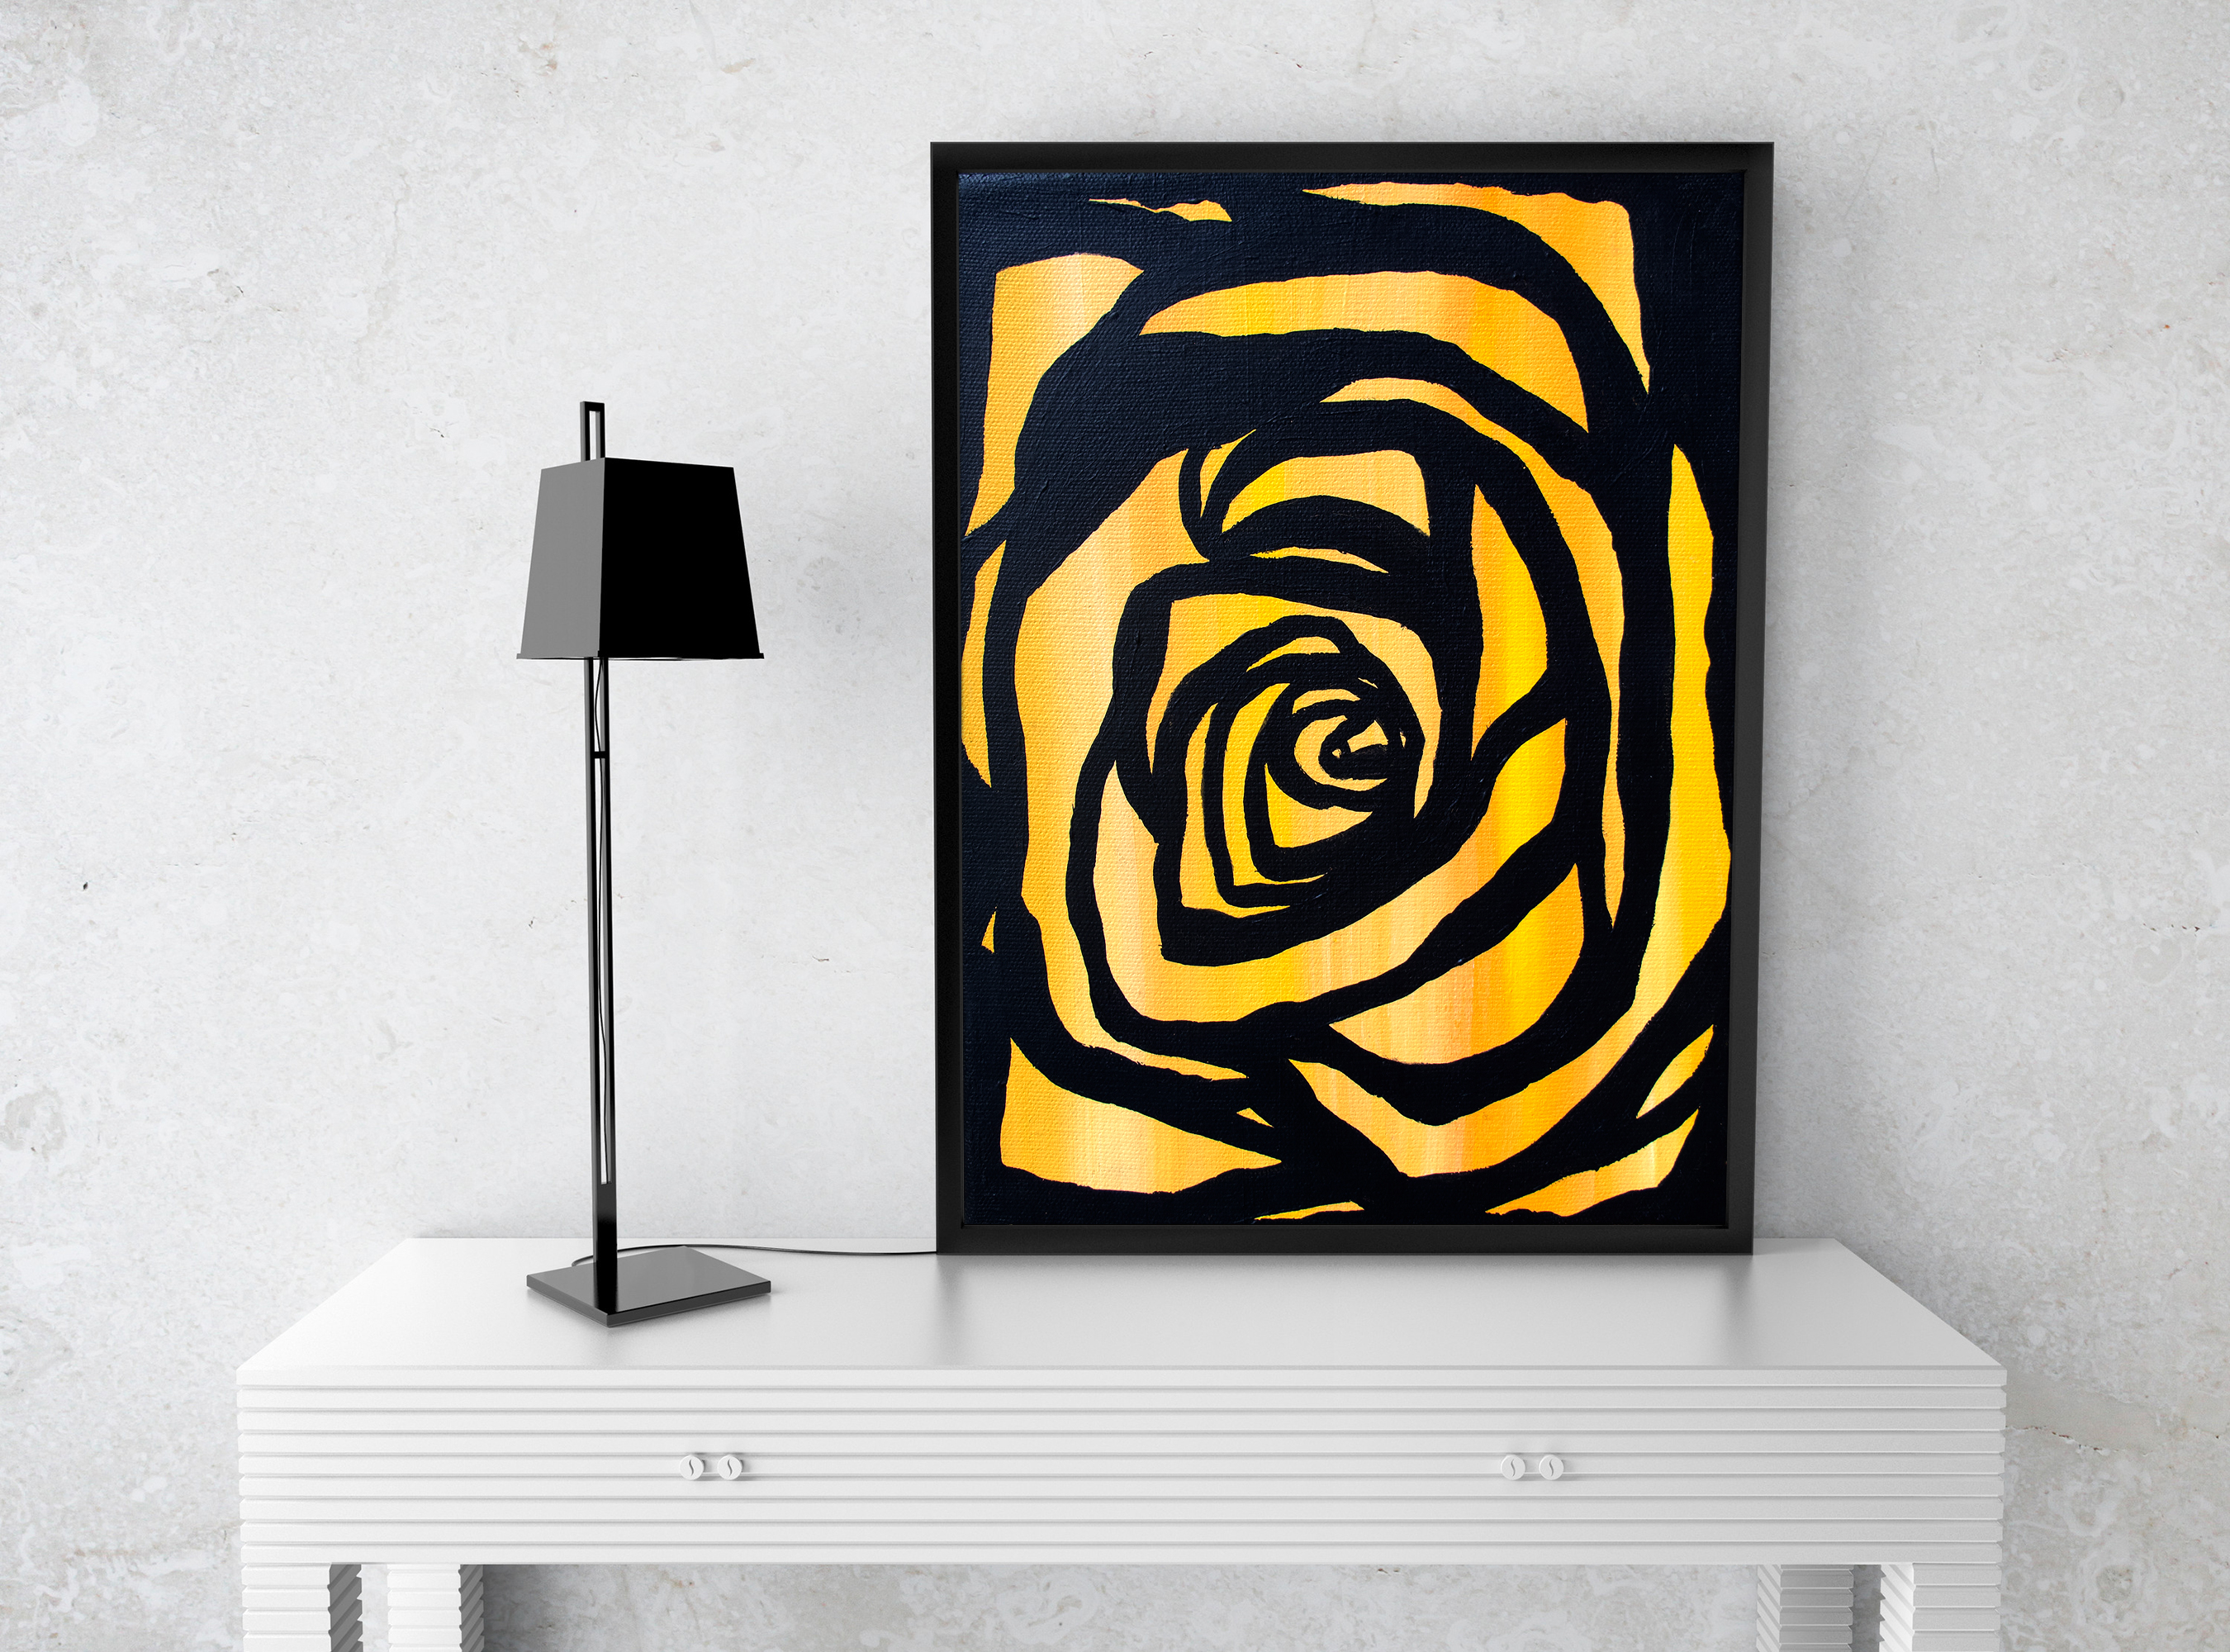 The Dark Rose Series - Yellow - 2009